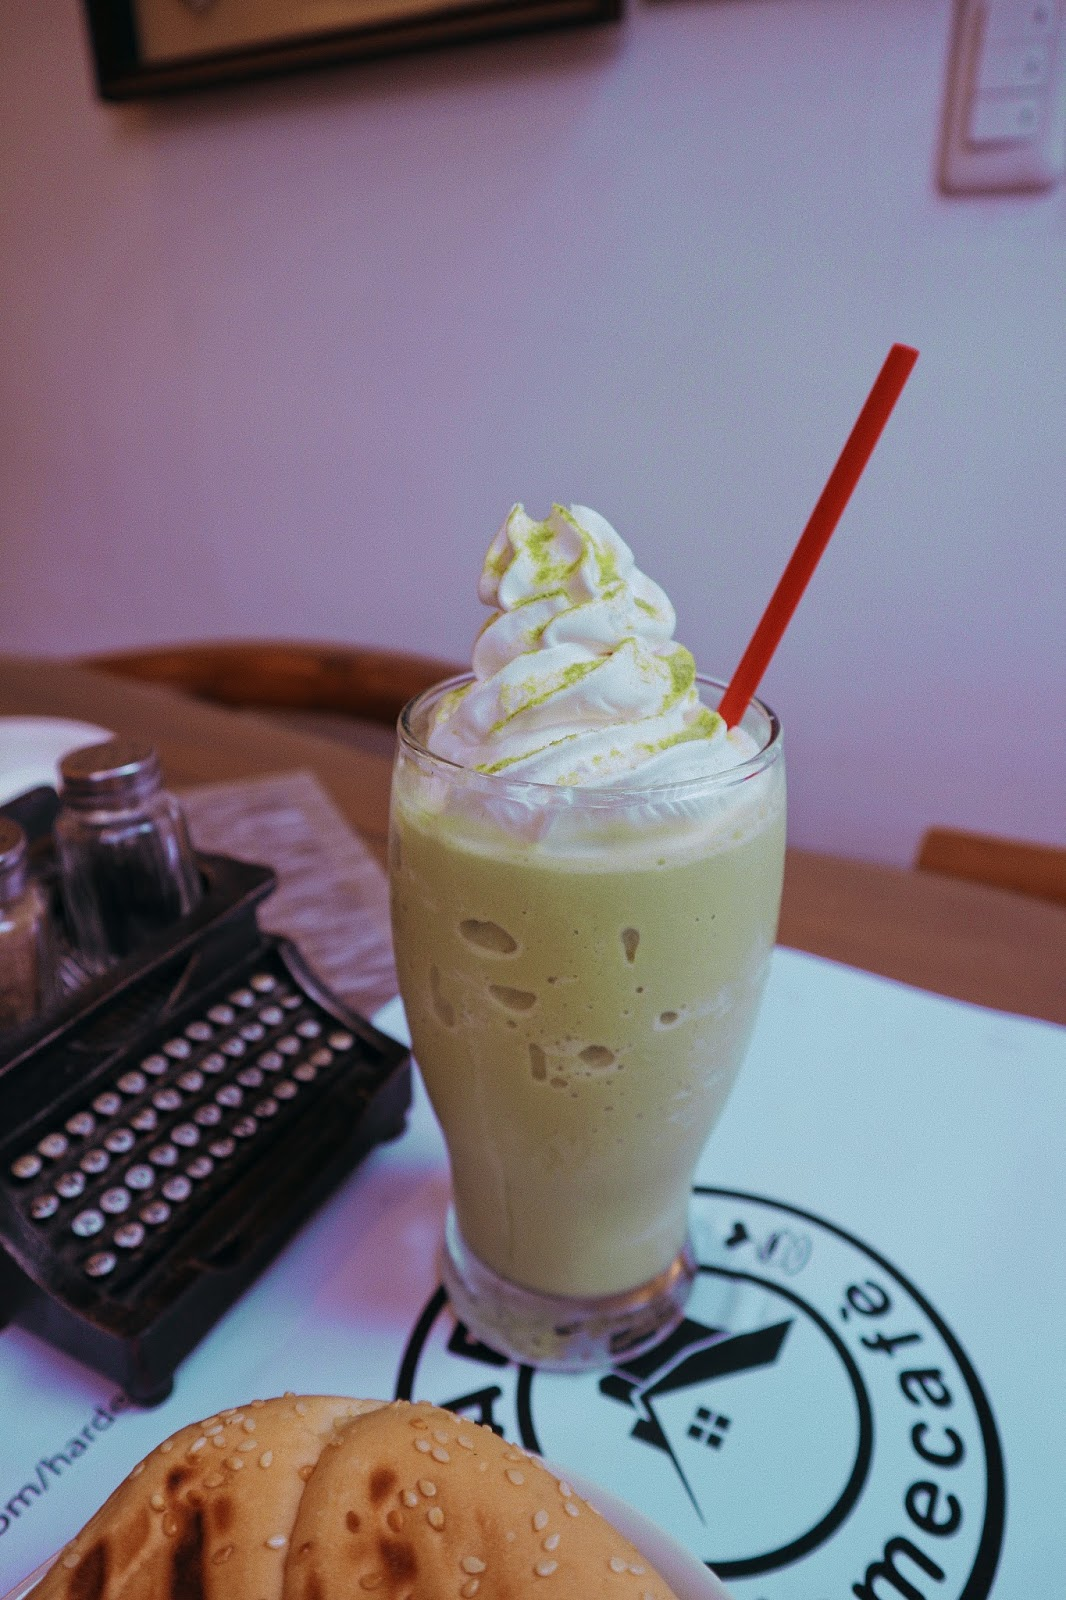 Harden Home Cafe Green Tea Milkshake